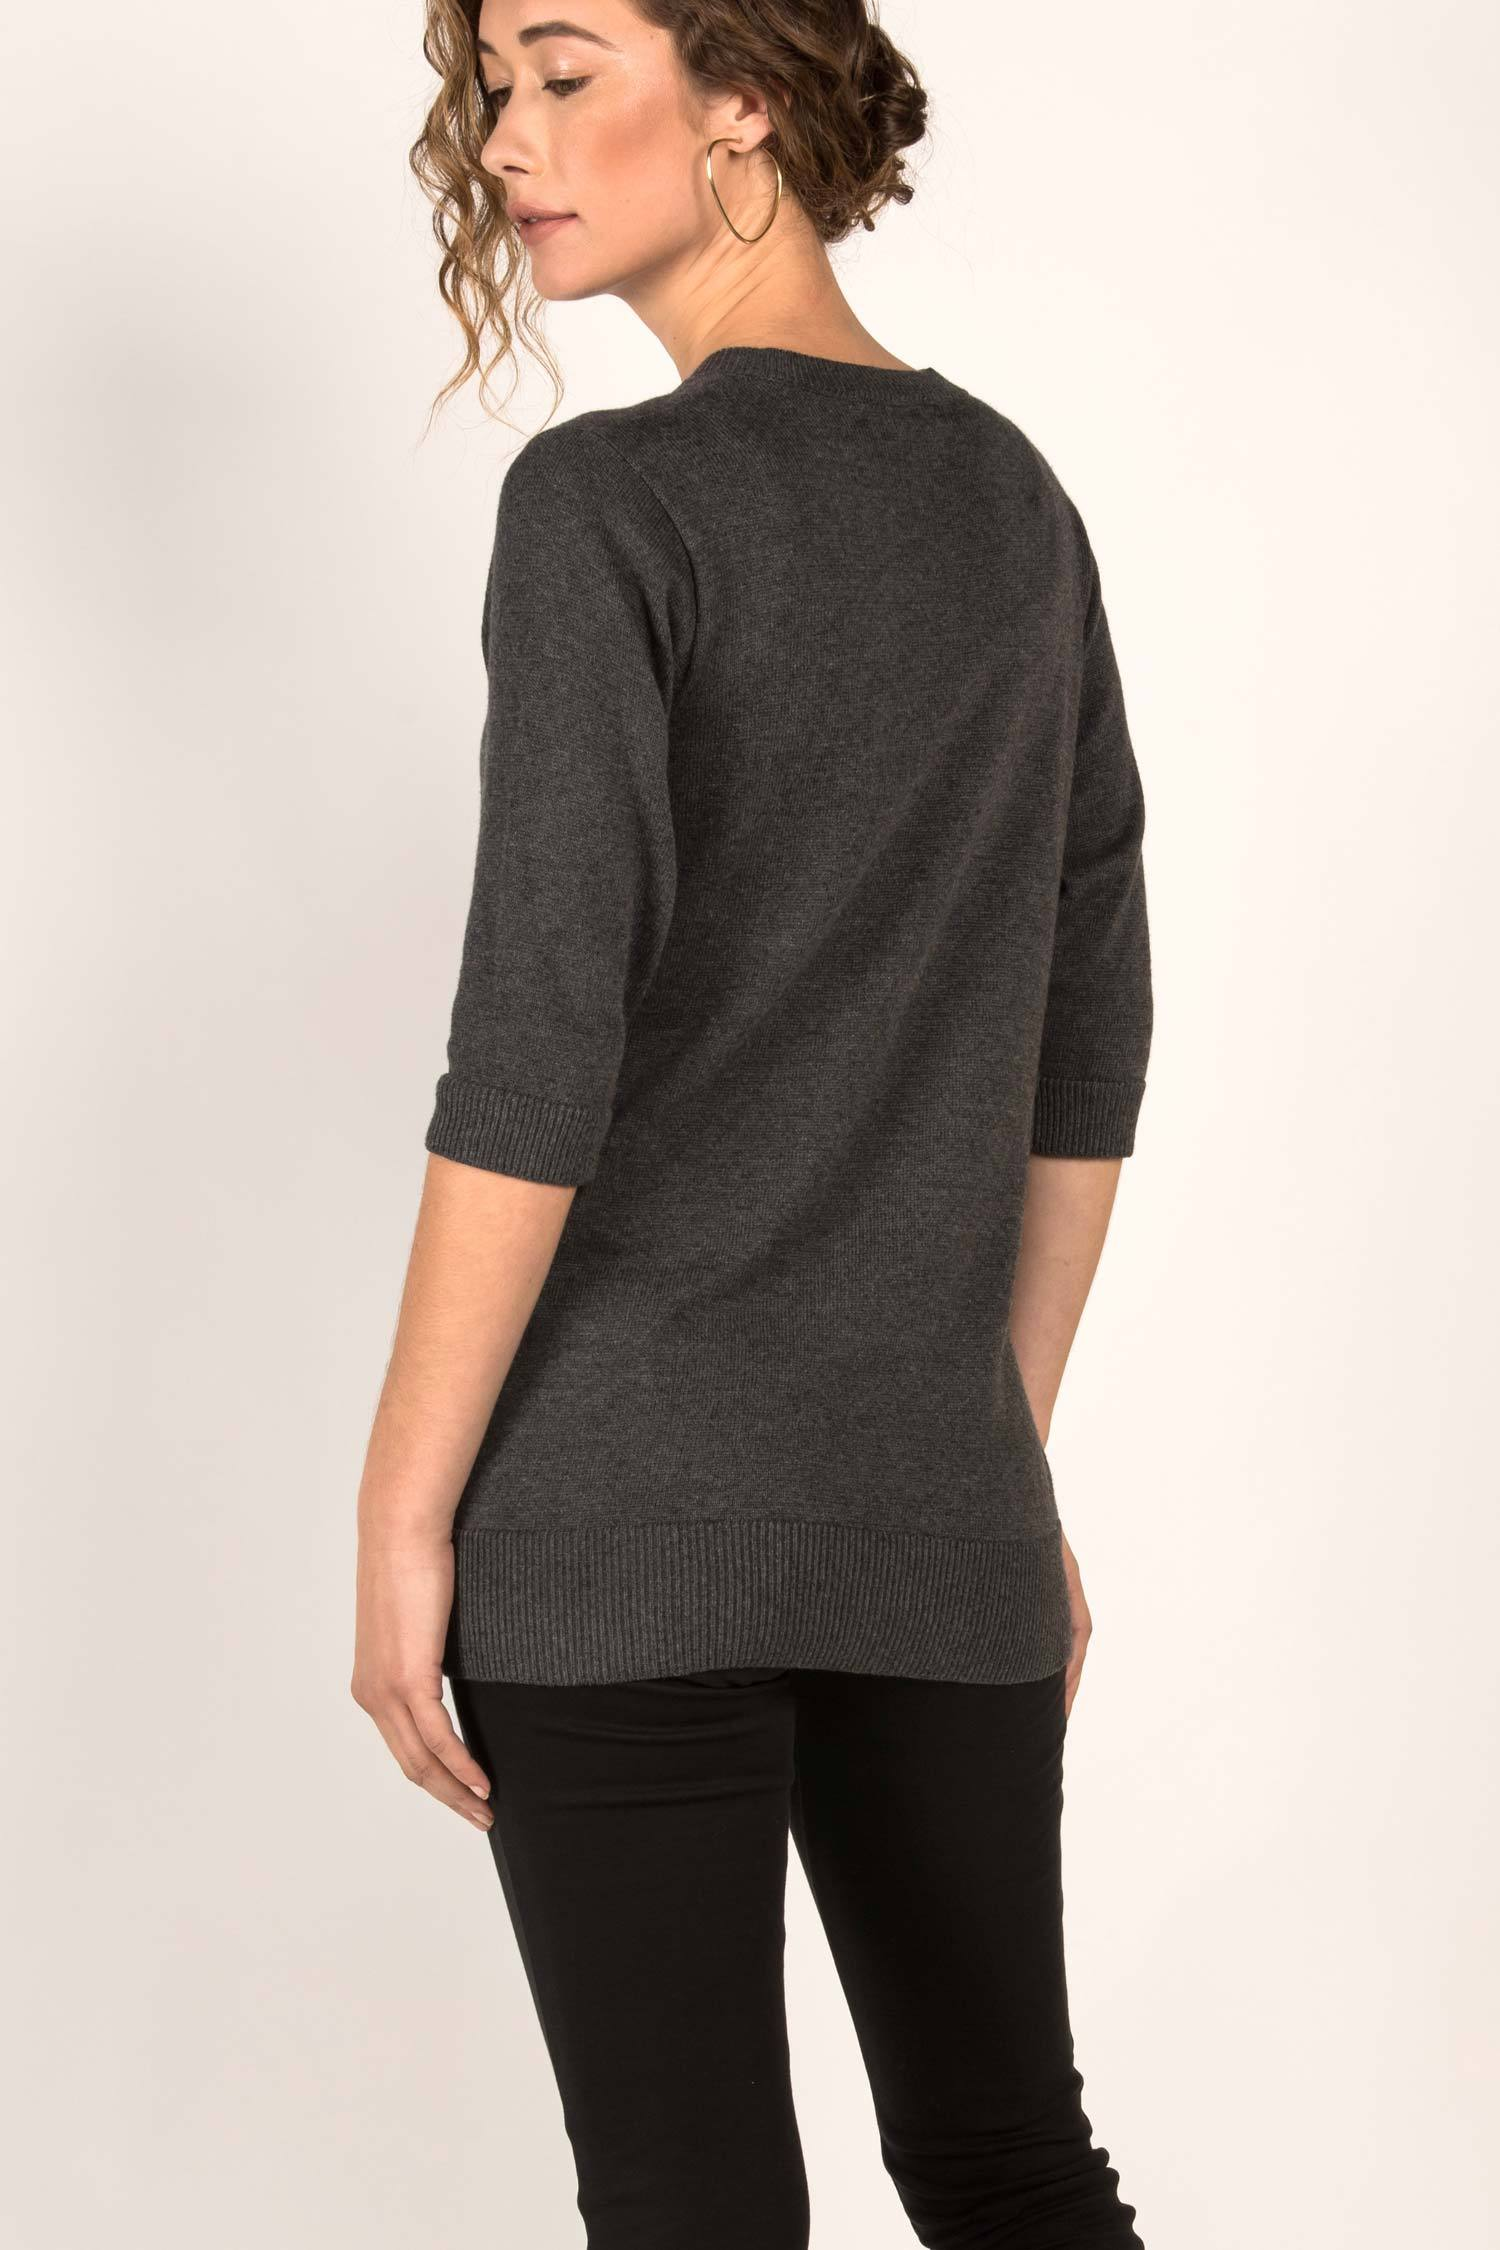 Womens Organic Cotton Top | Knit Elbow Sleeve Tunic Sweater | Charcoal Gray